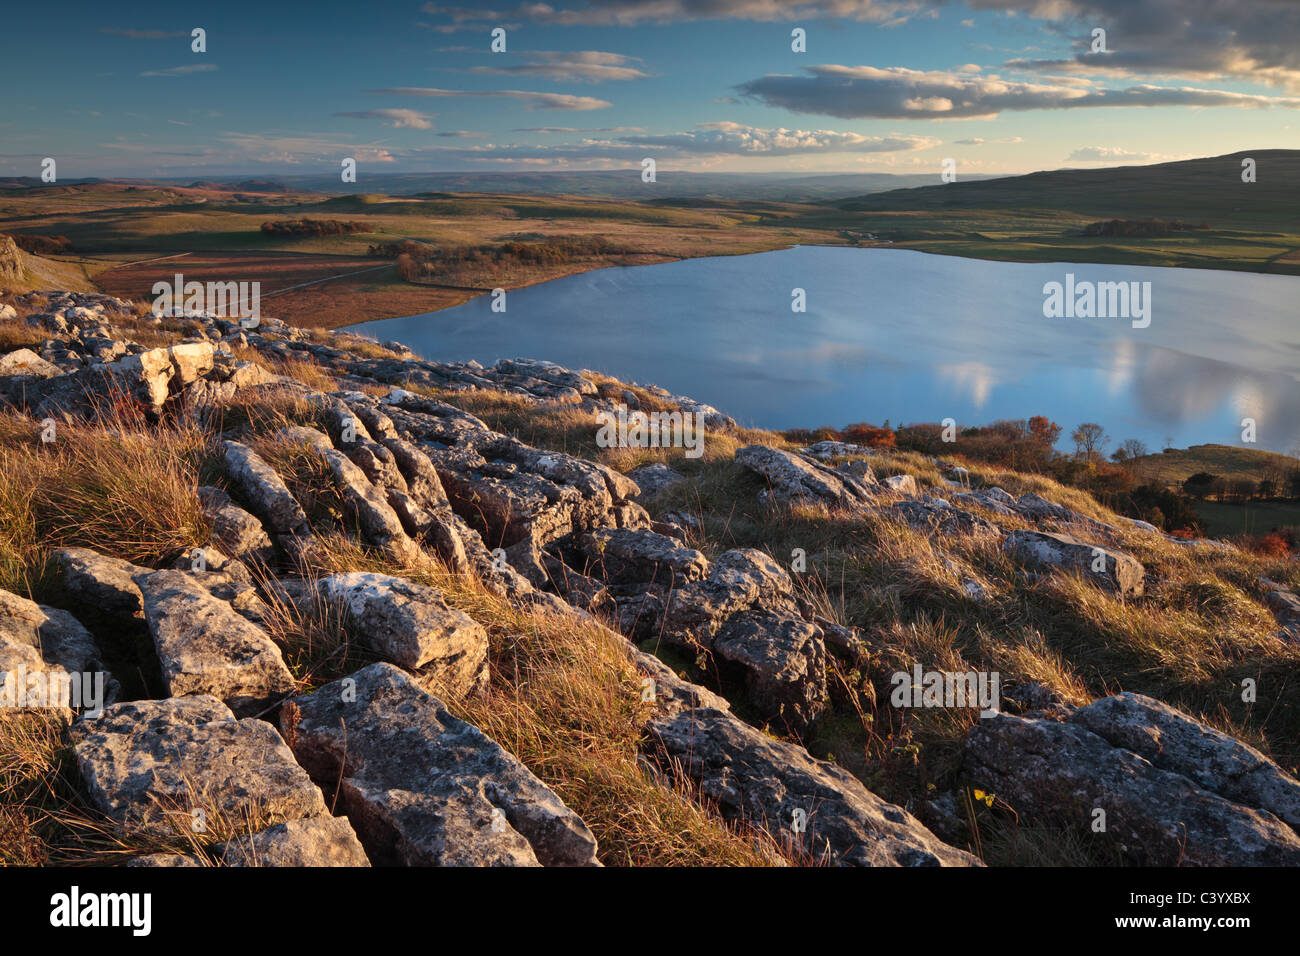 Sky and clouds reflect in the still waters of Malham Tarn in the Yorkshire Dales of England - Stock Image